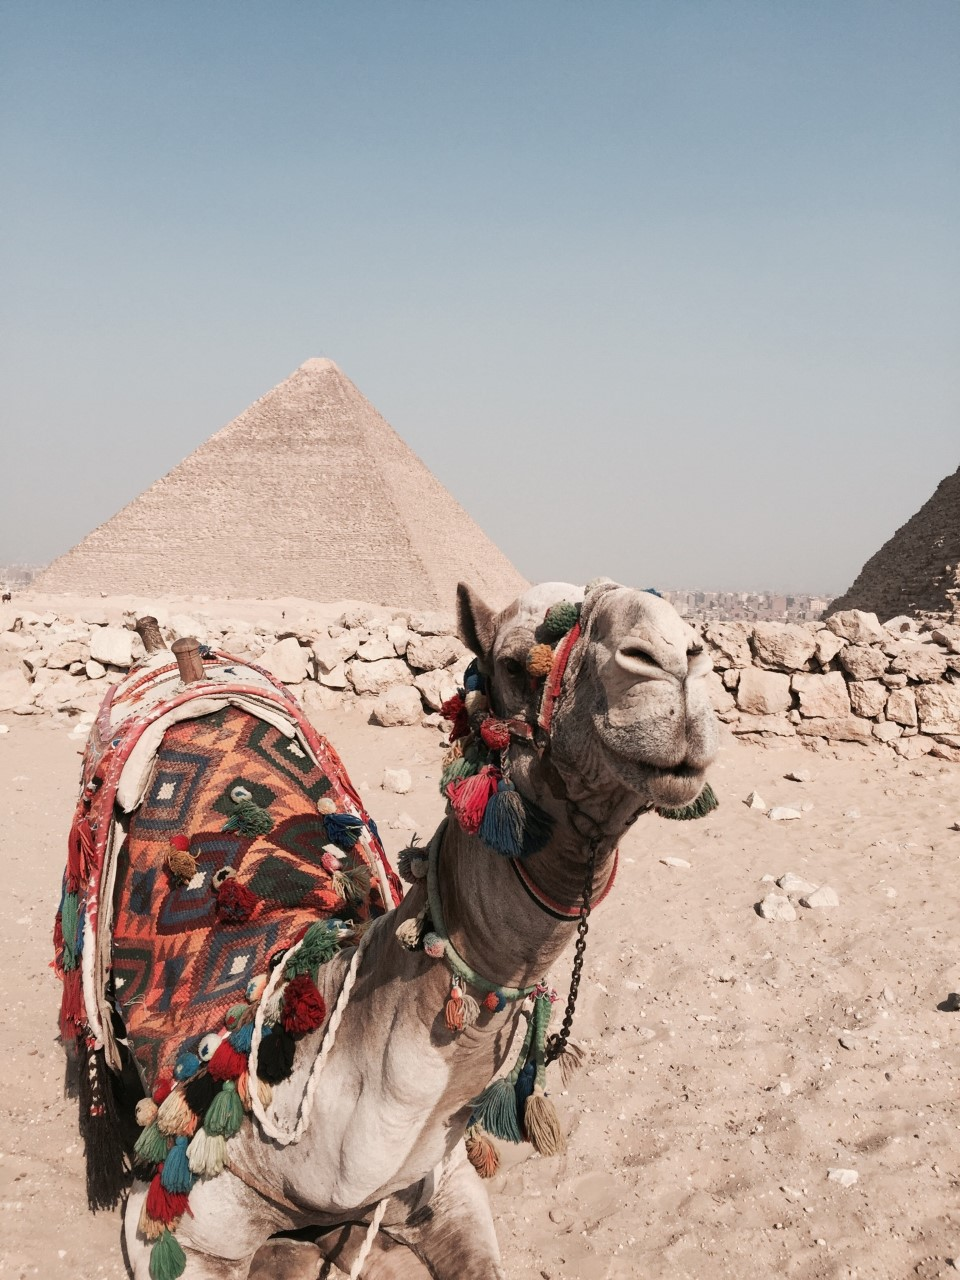 PYRAMIDS OF GIZA - One of the Seven wonders of the world.